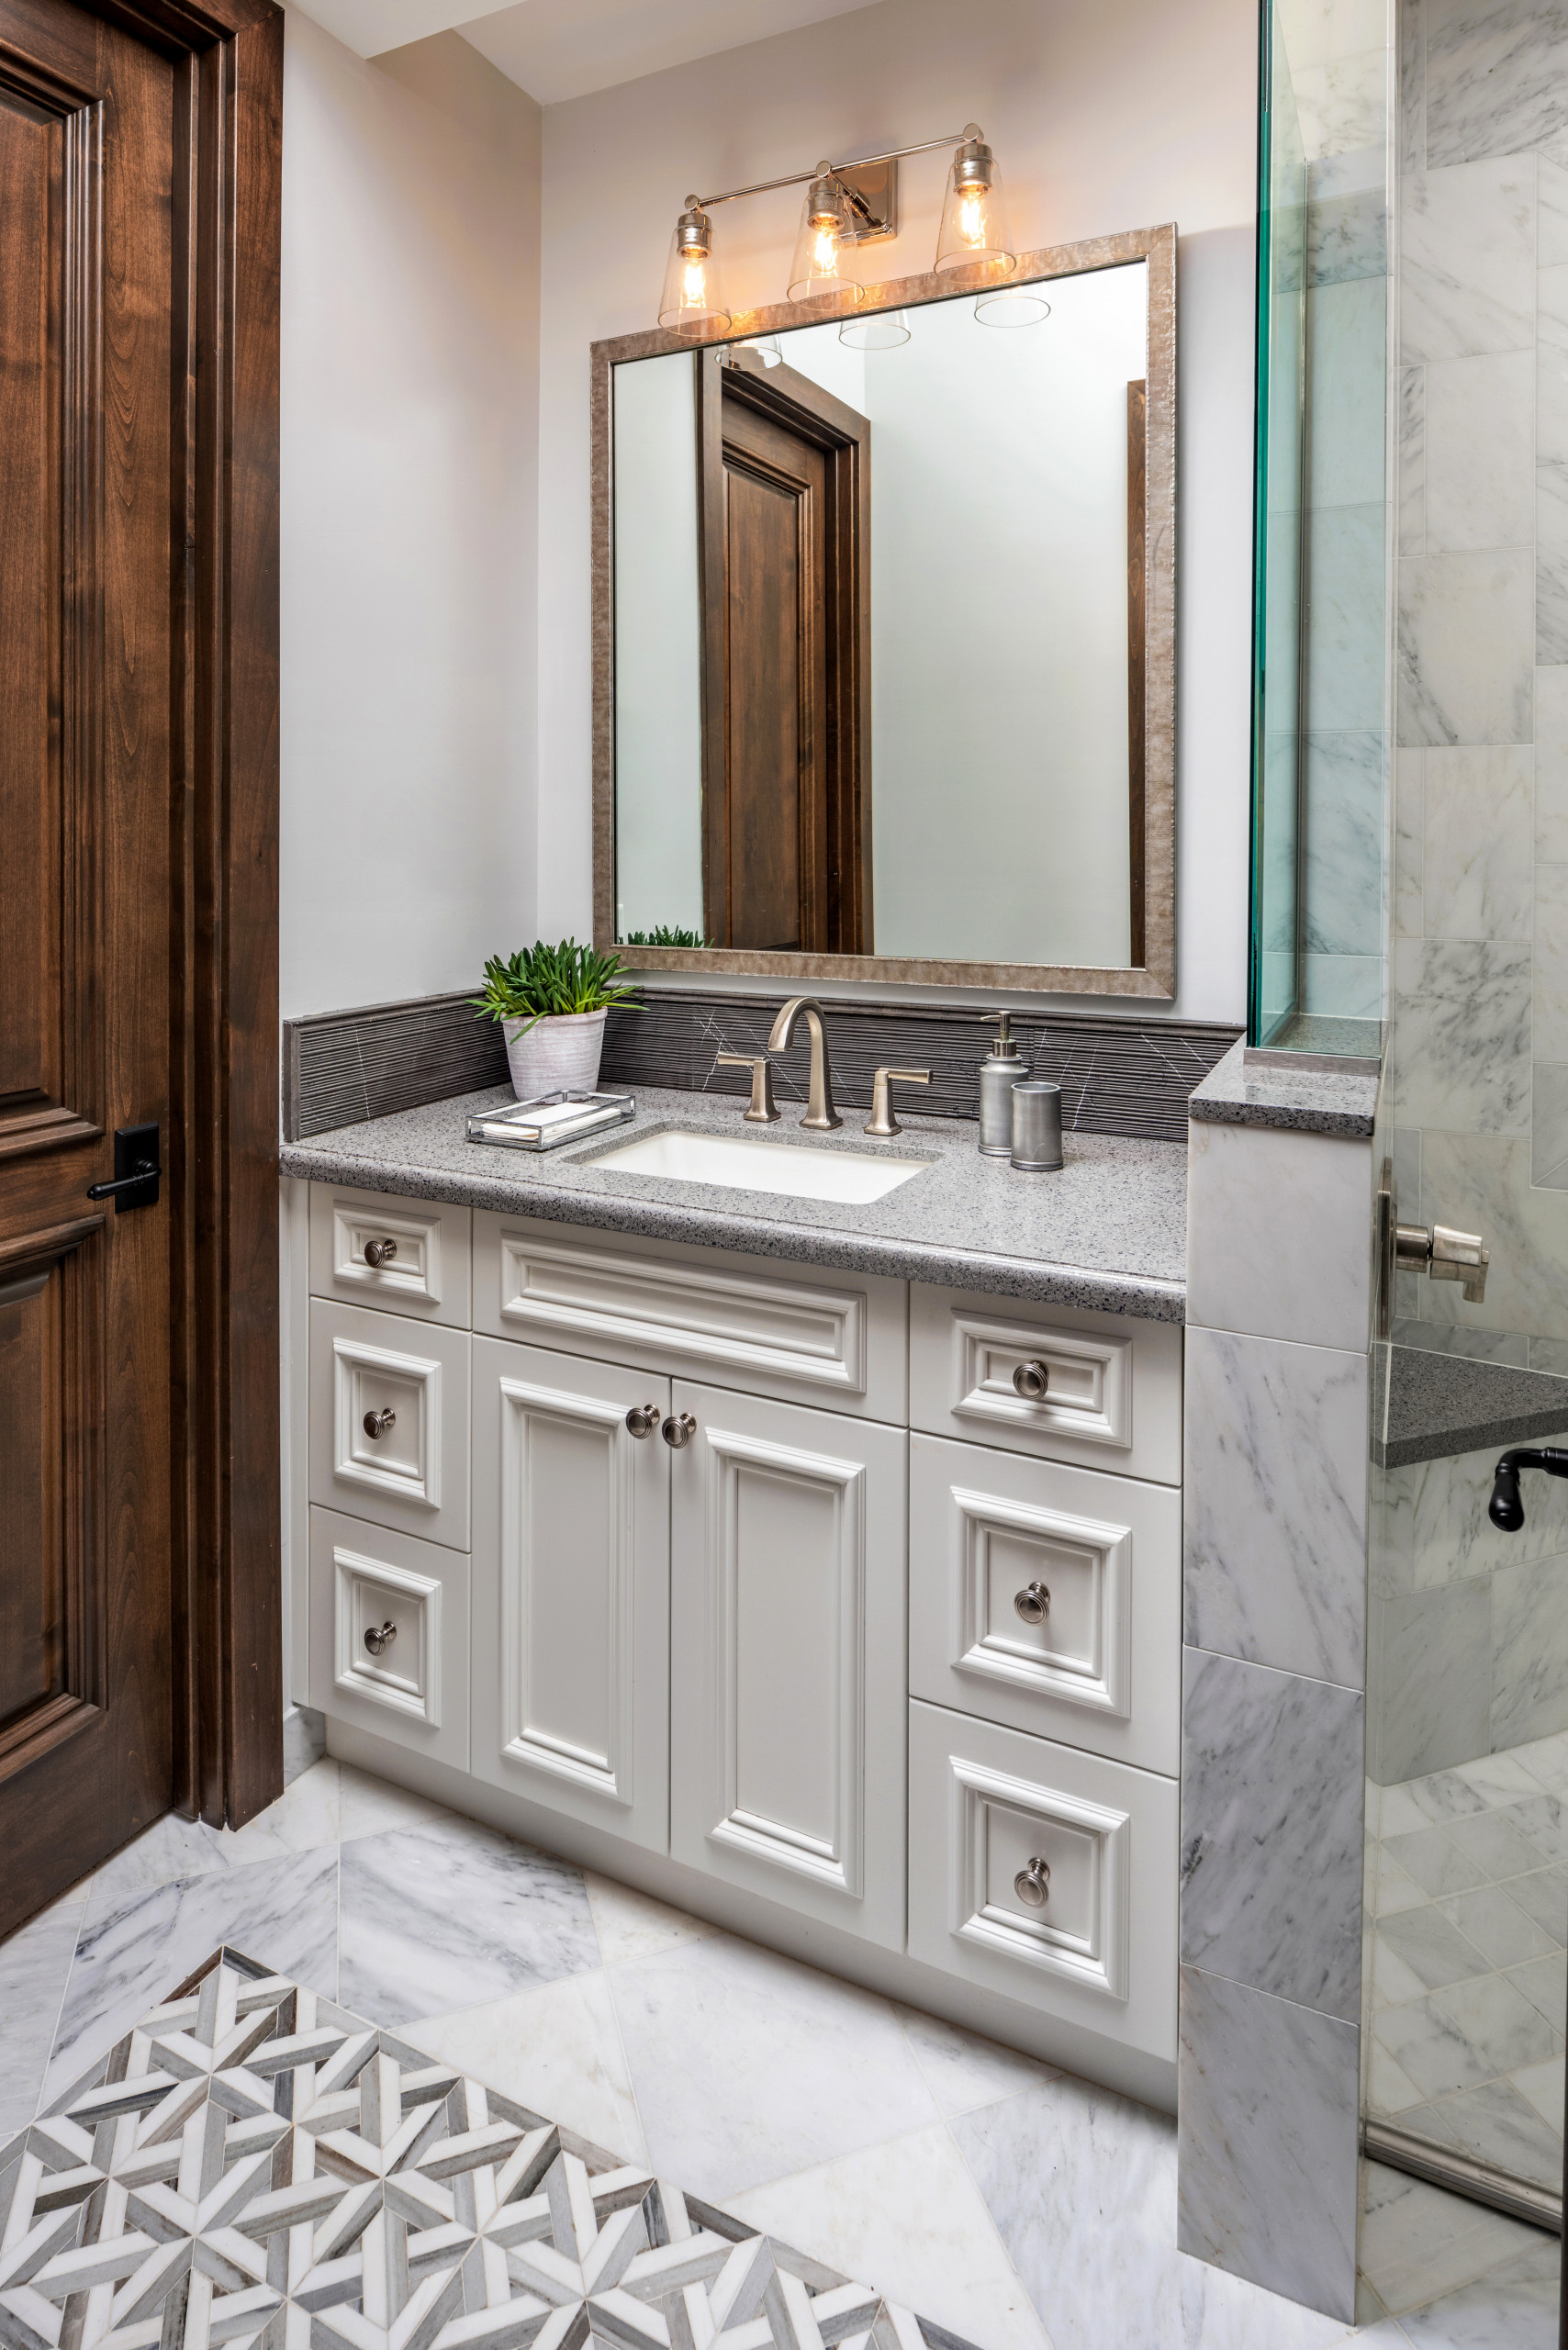 75 Beautiful Rustic Bathroom With White Cabinets Pictures Ideas February 2021 Houzz